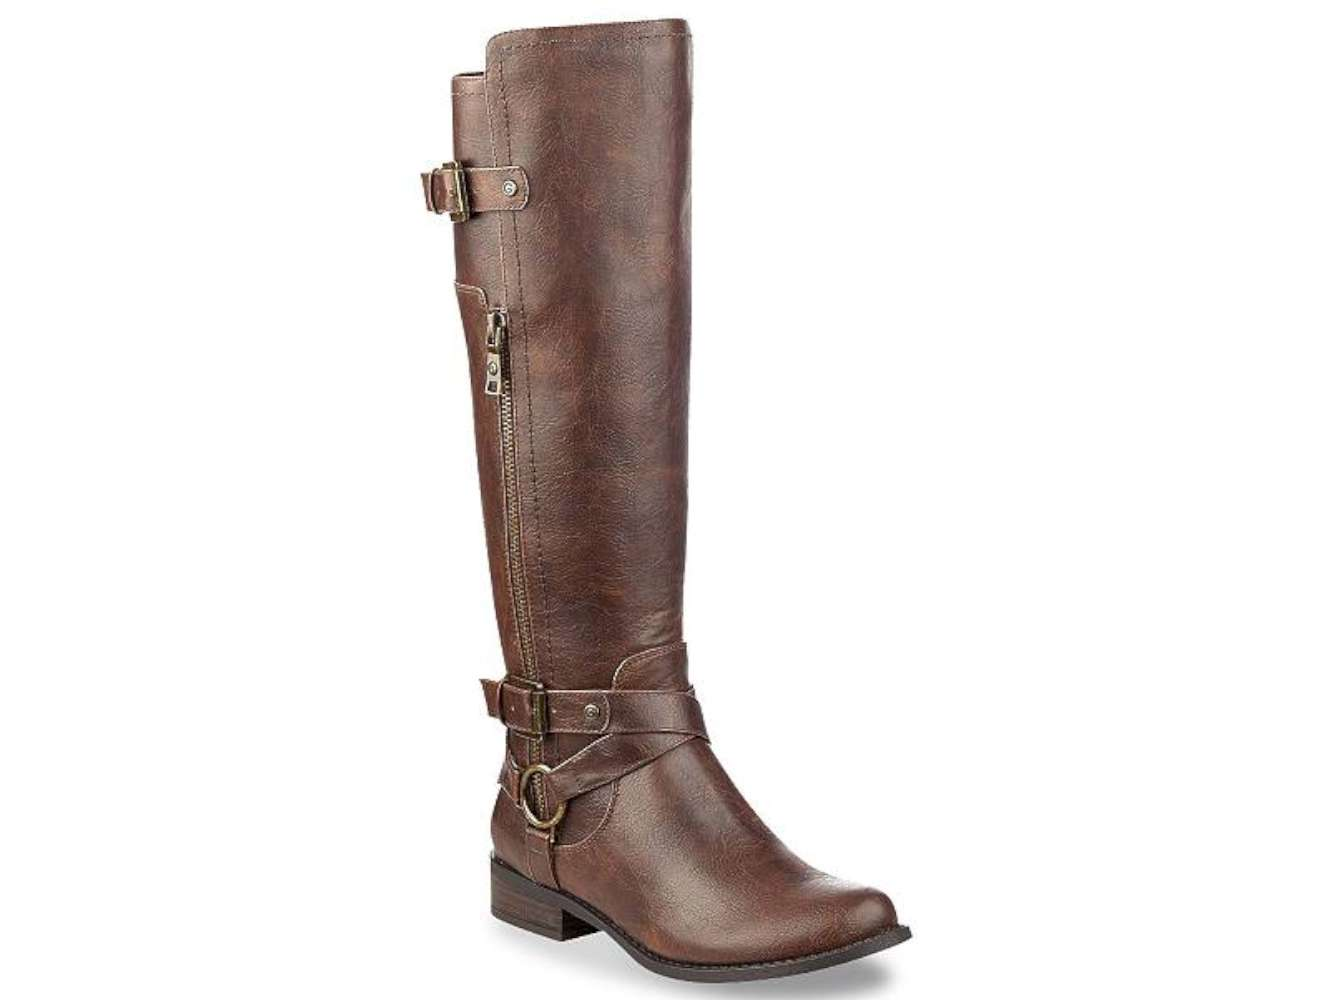 G by Guess Womens herly wc Closed Toe Knee High Fashion dark brown Size 8.5